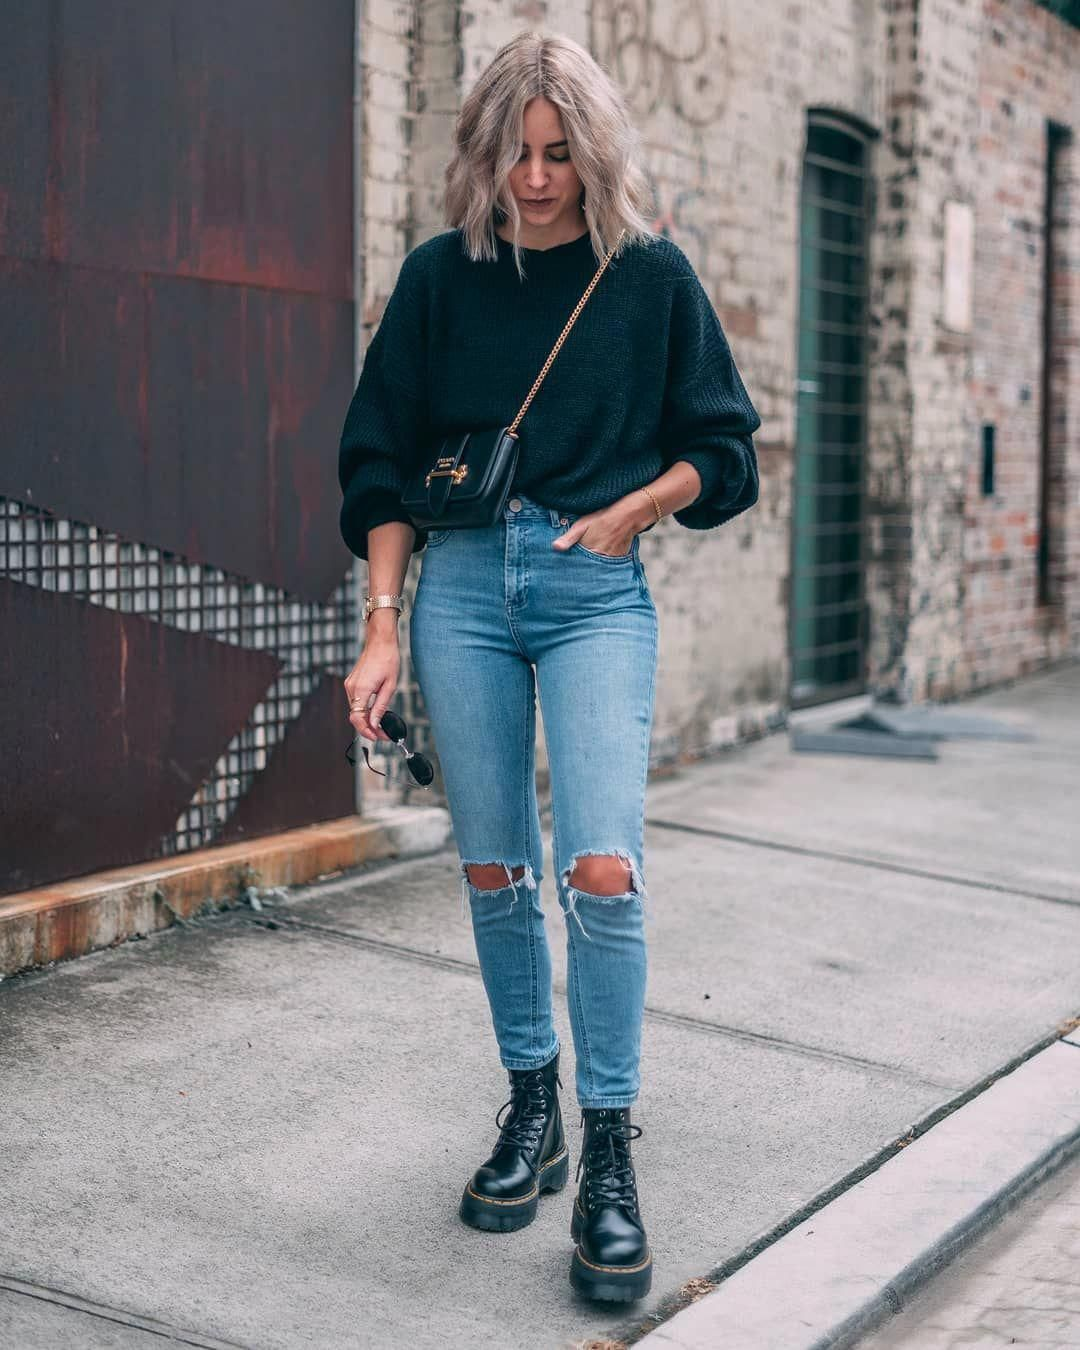 Pin von olivia auf Fashion  Outfit, Bootsschuhe outfit, Outfit ideen